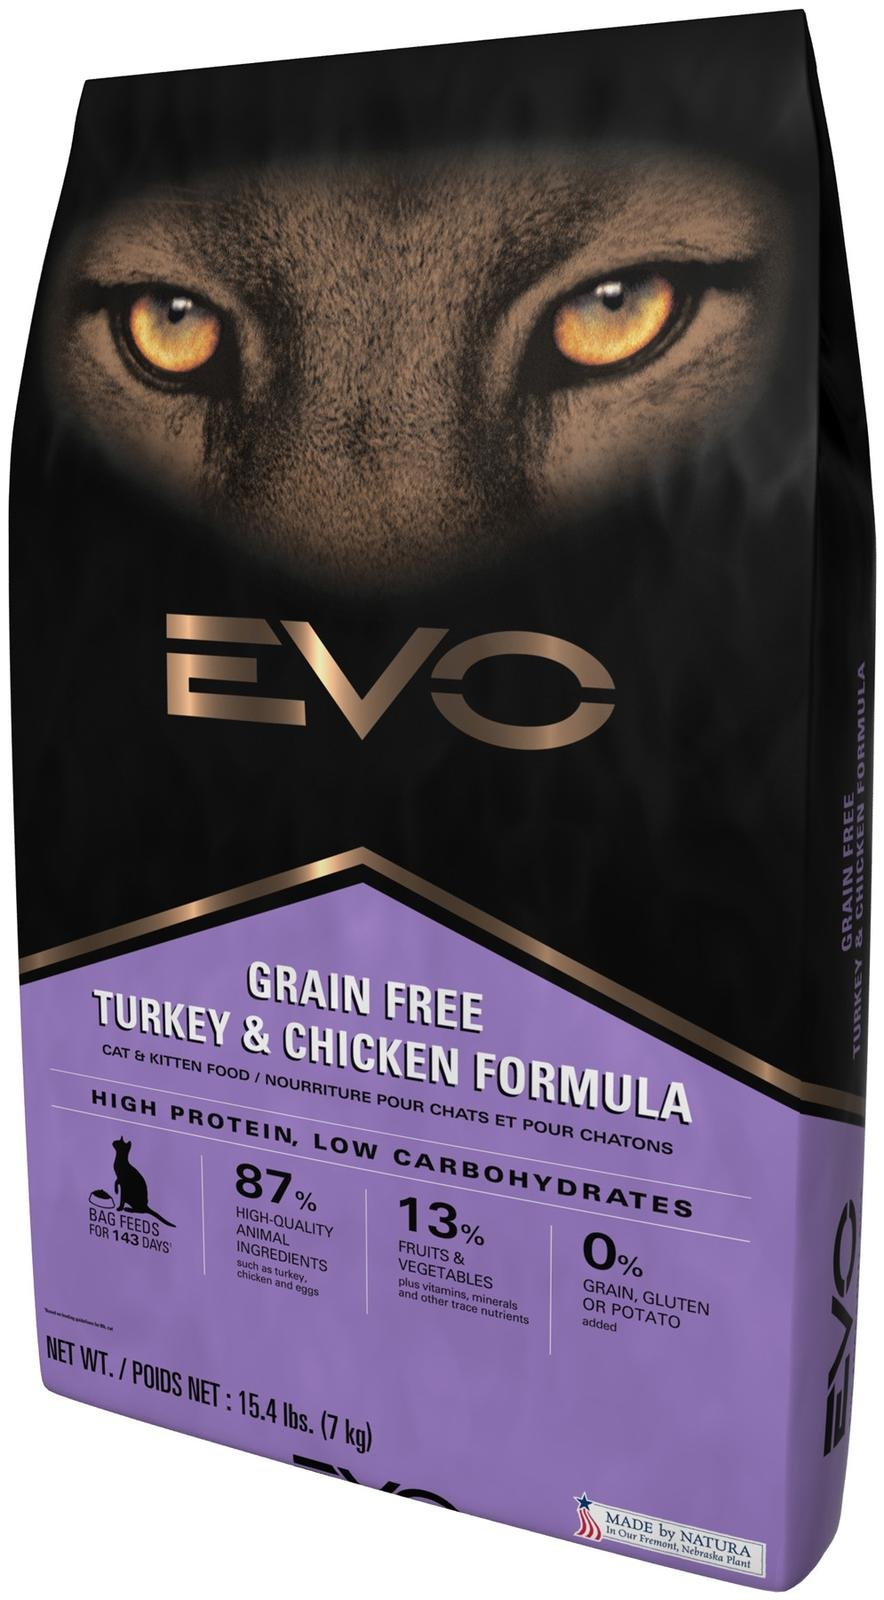 EVO Turkey & Chicken Cat & Kitten Formula Grain-Free Dry Cat Food 15.4lbs